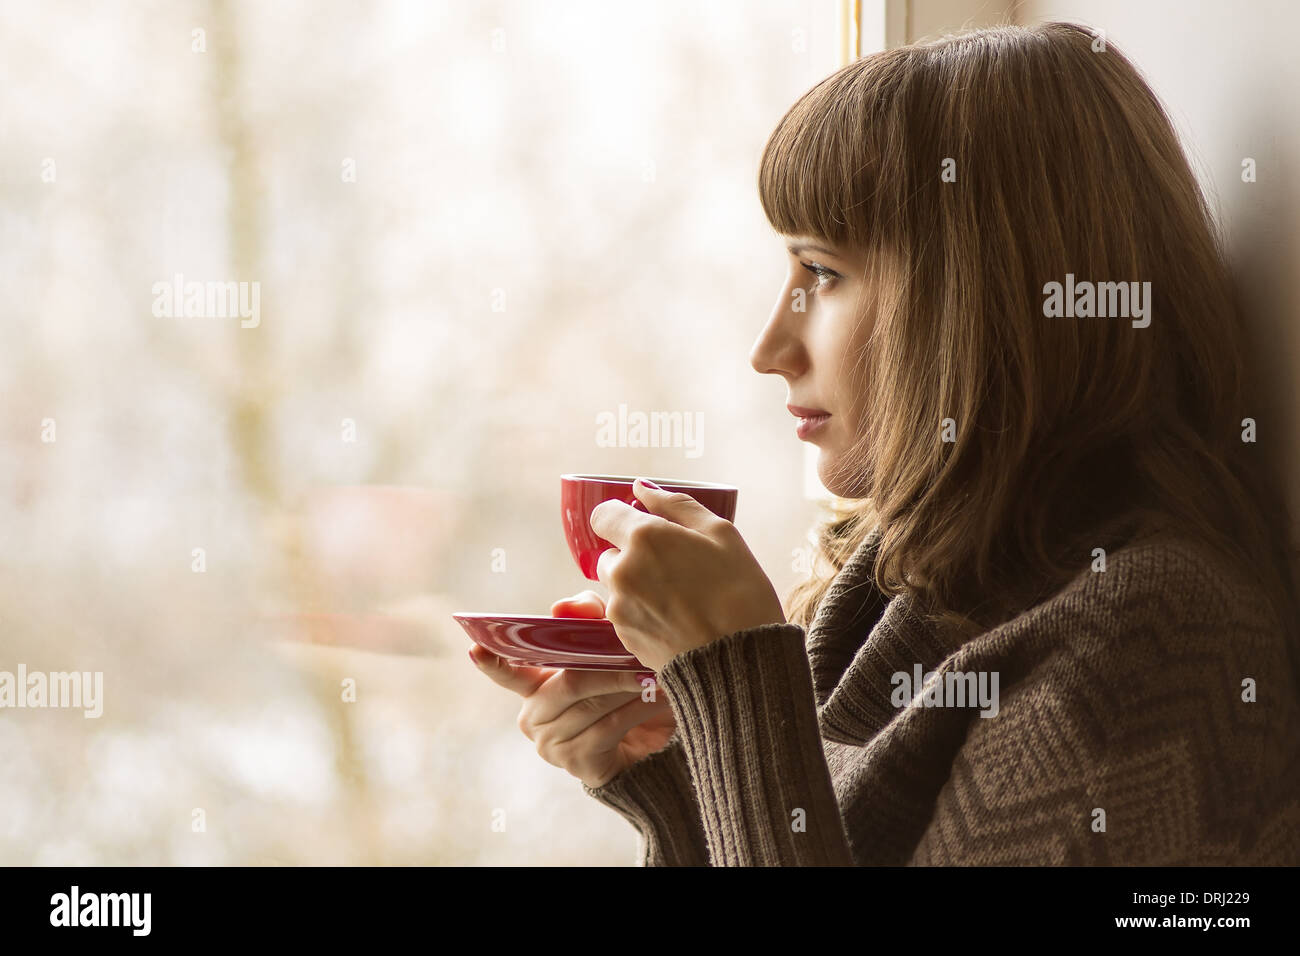 Beautiful girl drinking Coffee or Tea near Window - Stock Image